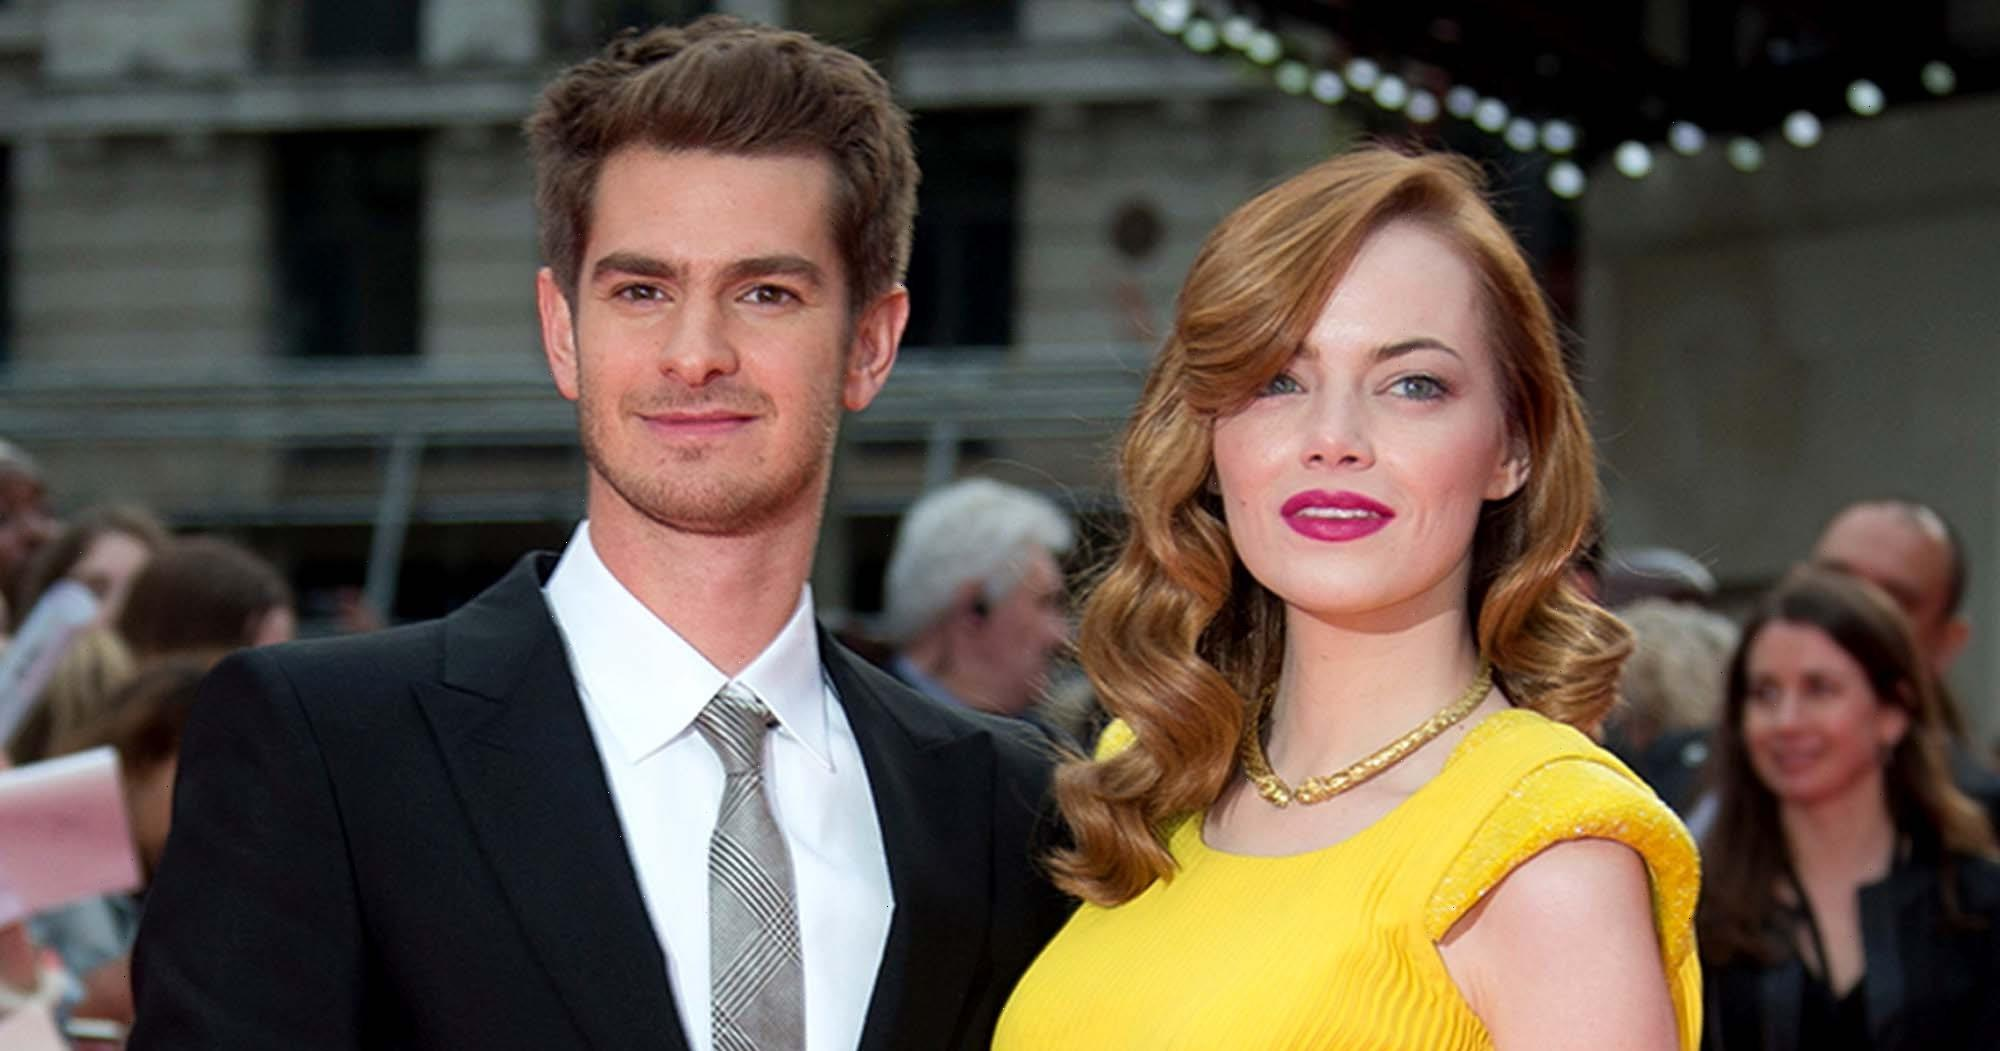 Andrew Garfield Reflects on 'Spider-Man' Movies: 'I Got to Meet Emma'